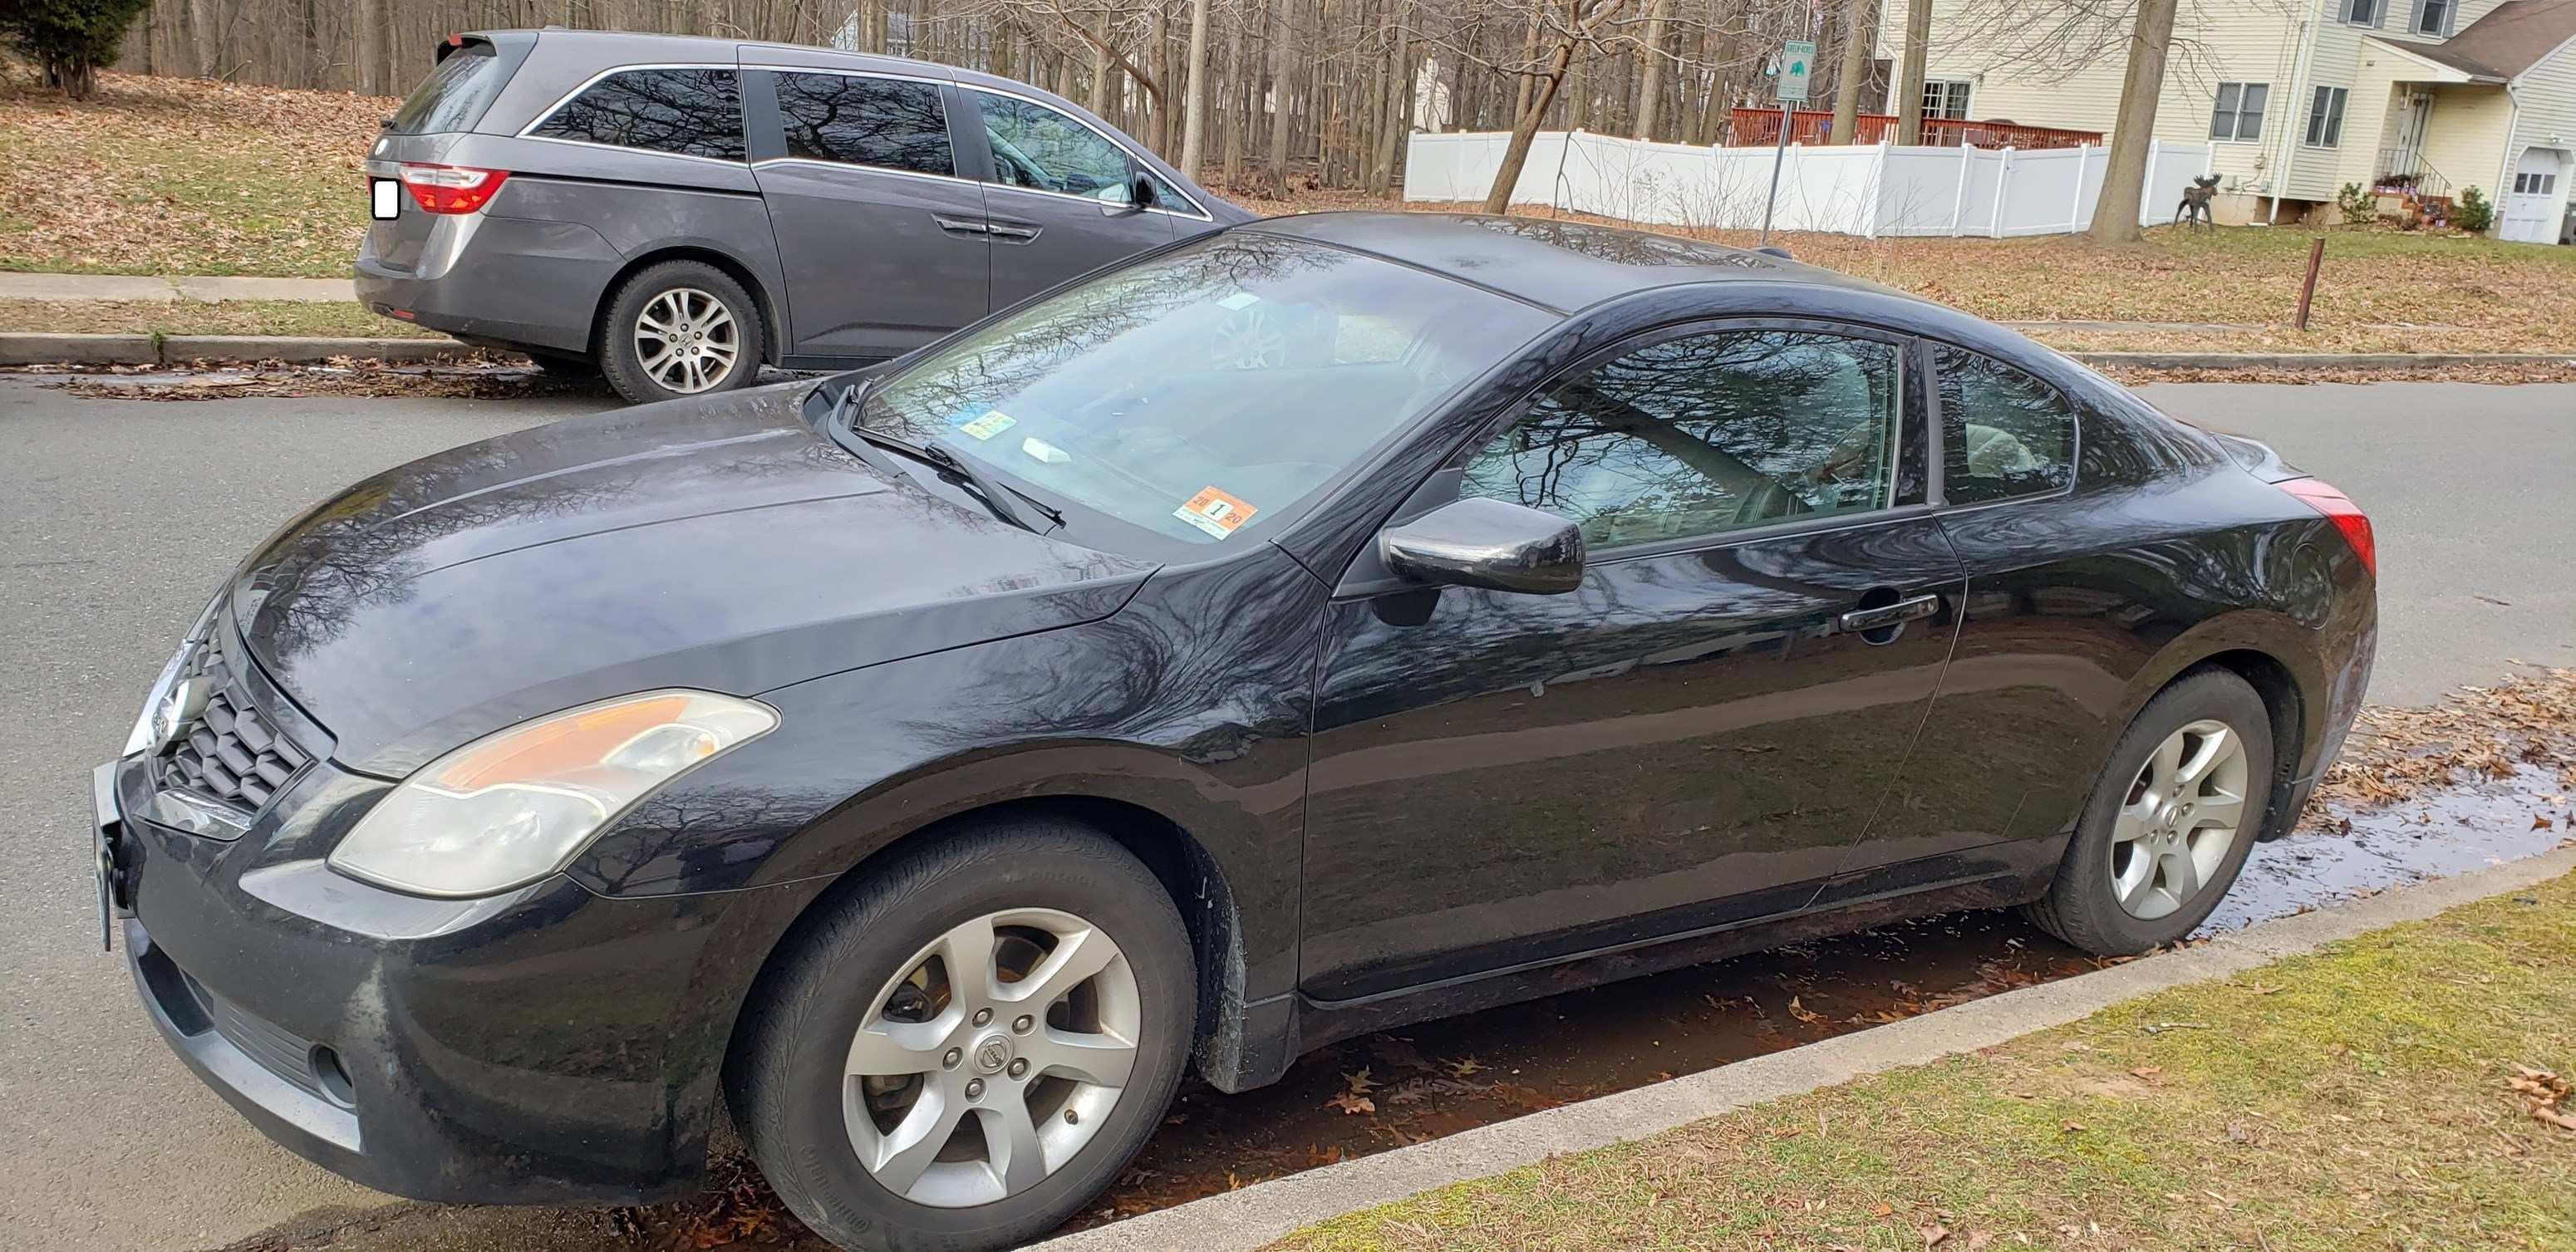 16 All New 2009 Nissan Altima Coupe Picture with 2009 Nissan Altima Coupe